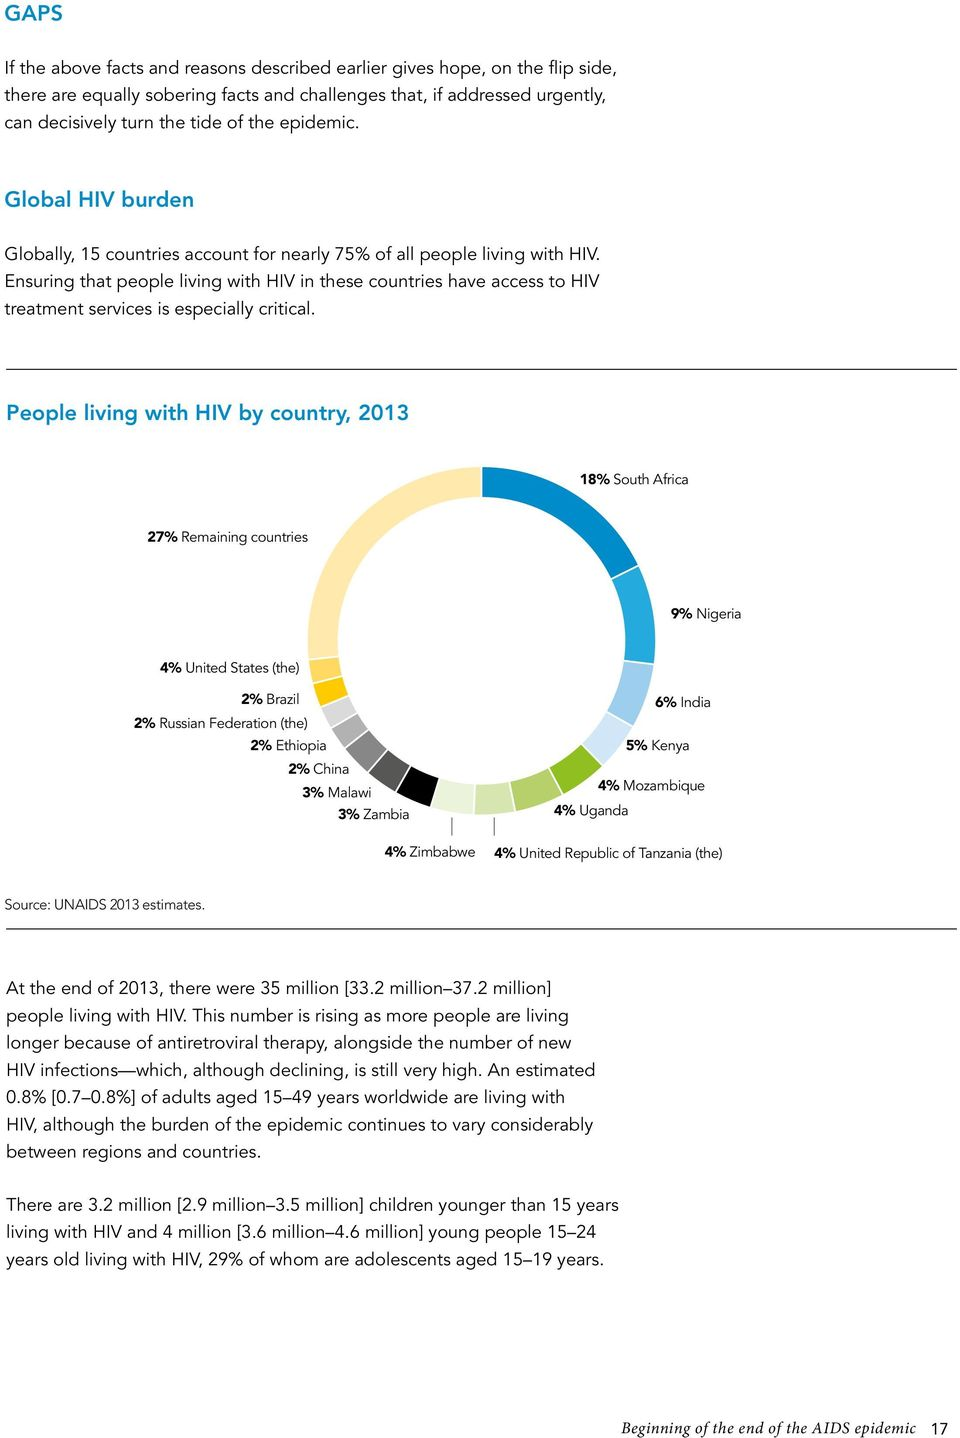 Ensuring that people living with HIV in these countries have access to HIV treatment services is especially critical.